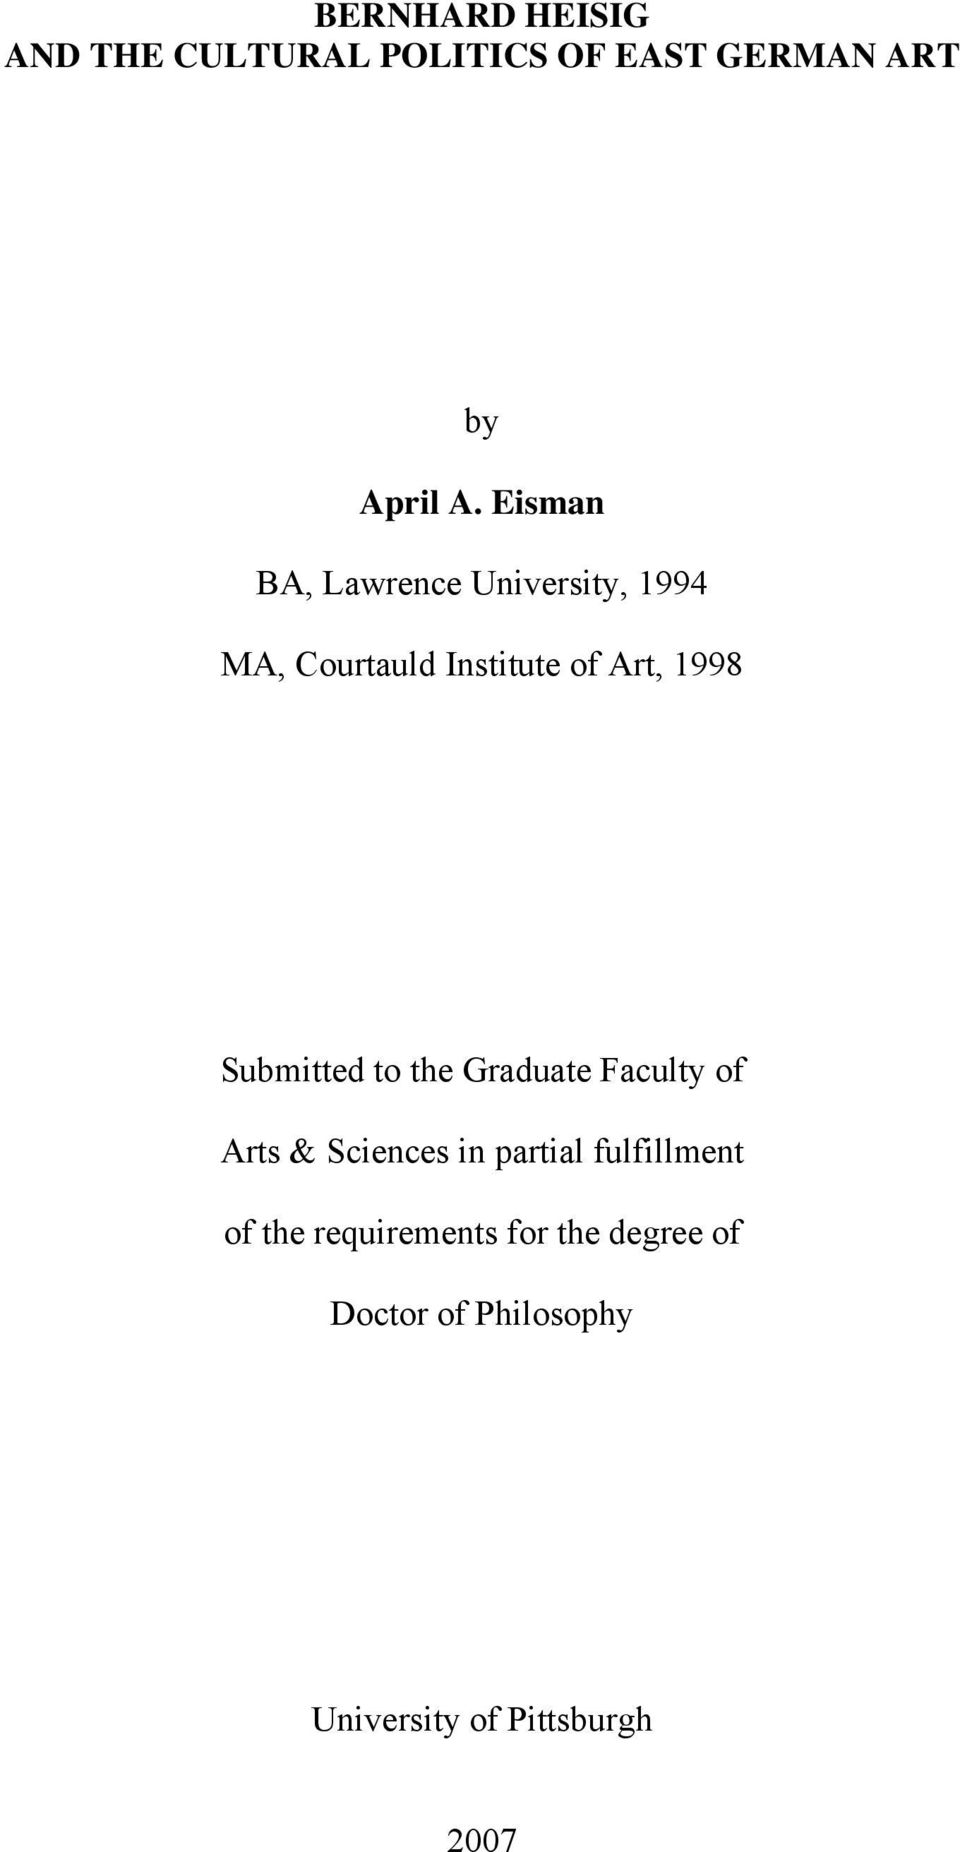 Submitted to the Graduate Faculty of Arts & Sciences in partial fulfillment